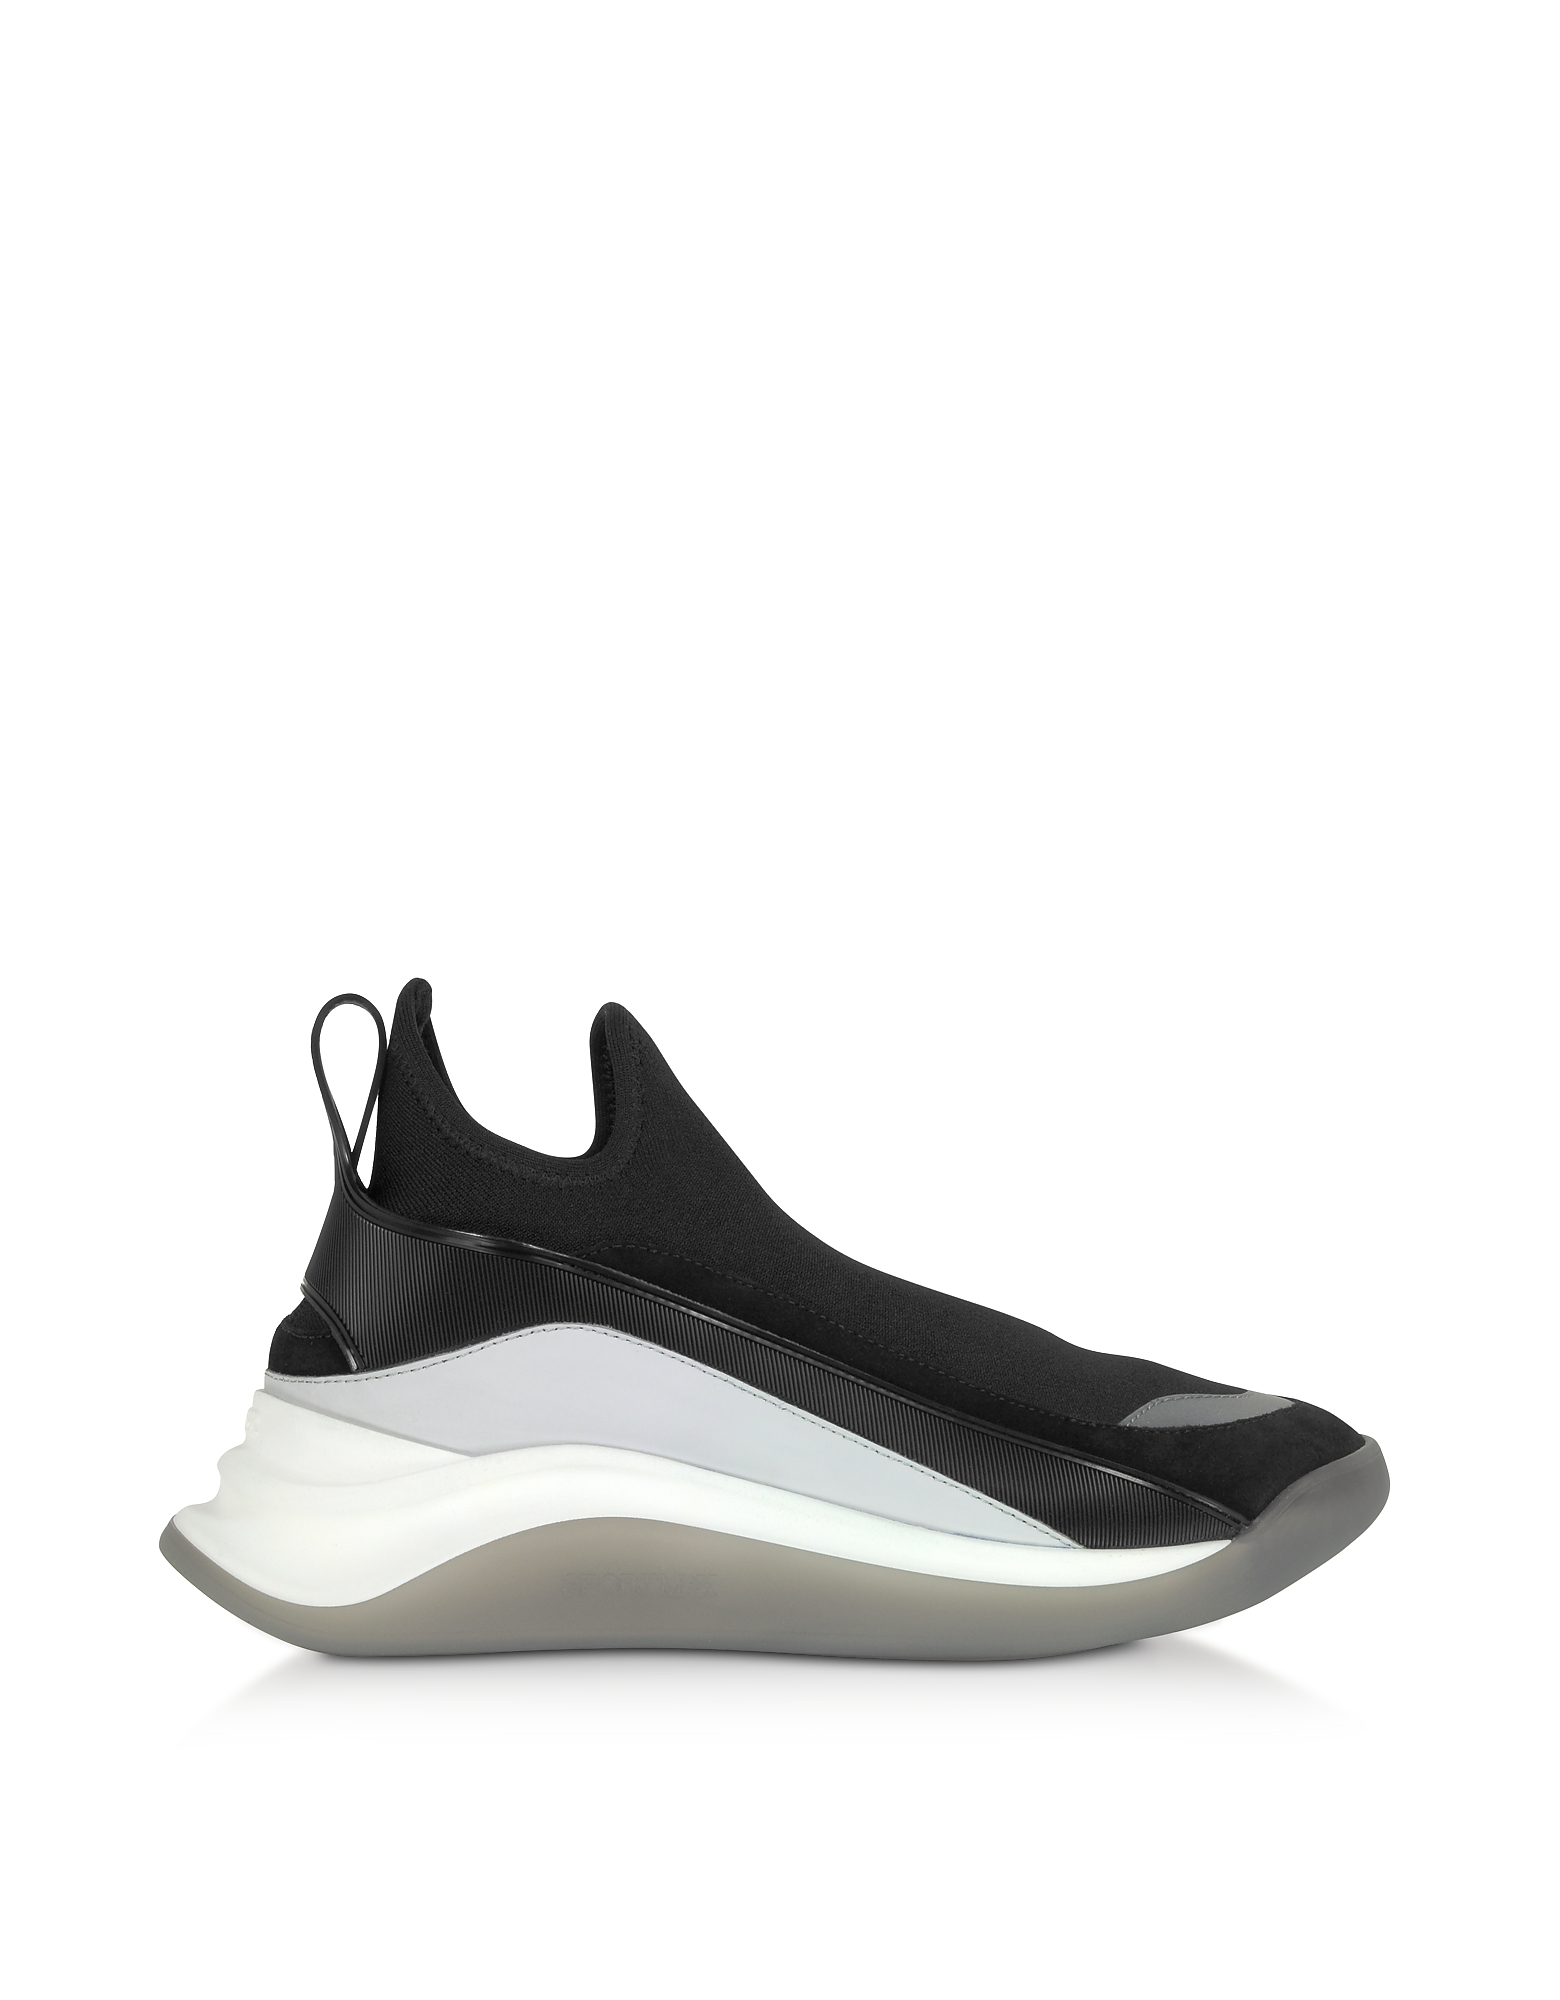 SportMax Designer Shoes, Black High-Performance Futuristic Sneakers